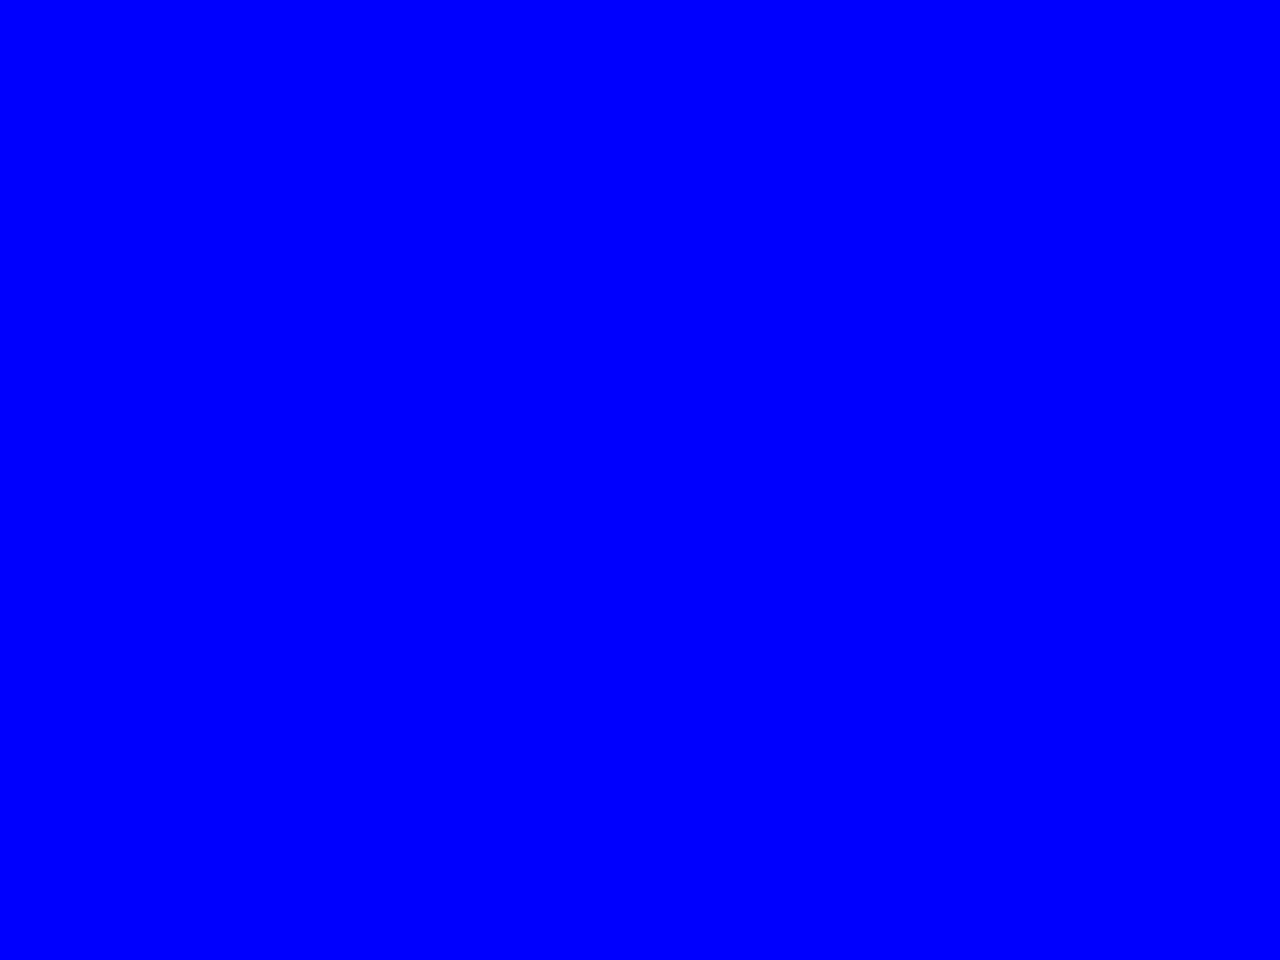 1280x960 Blue Solid Color Background